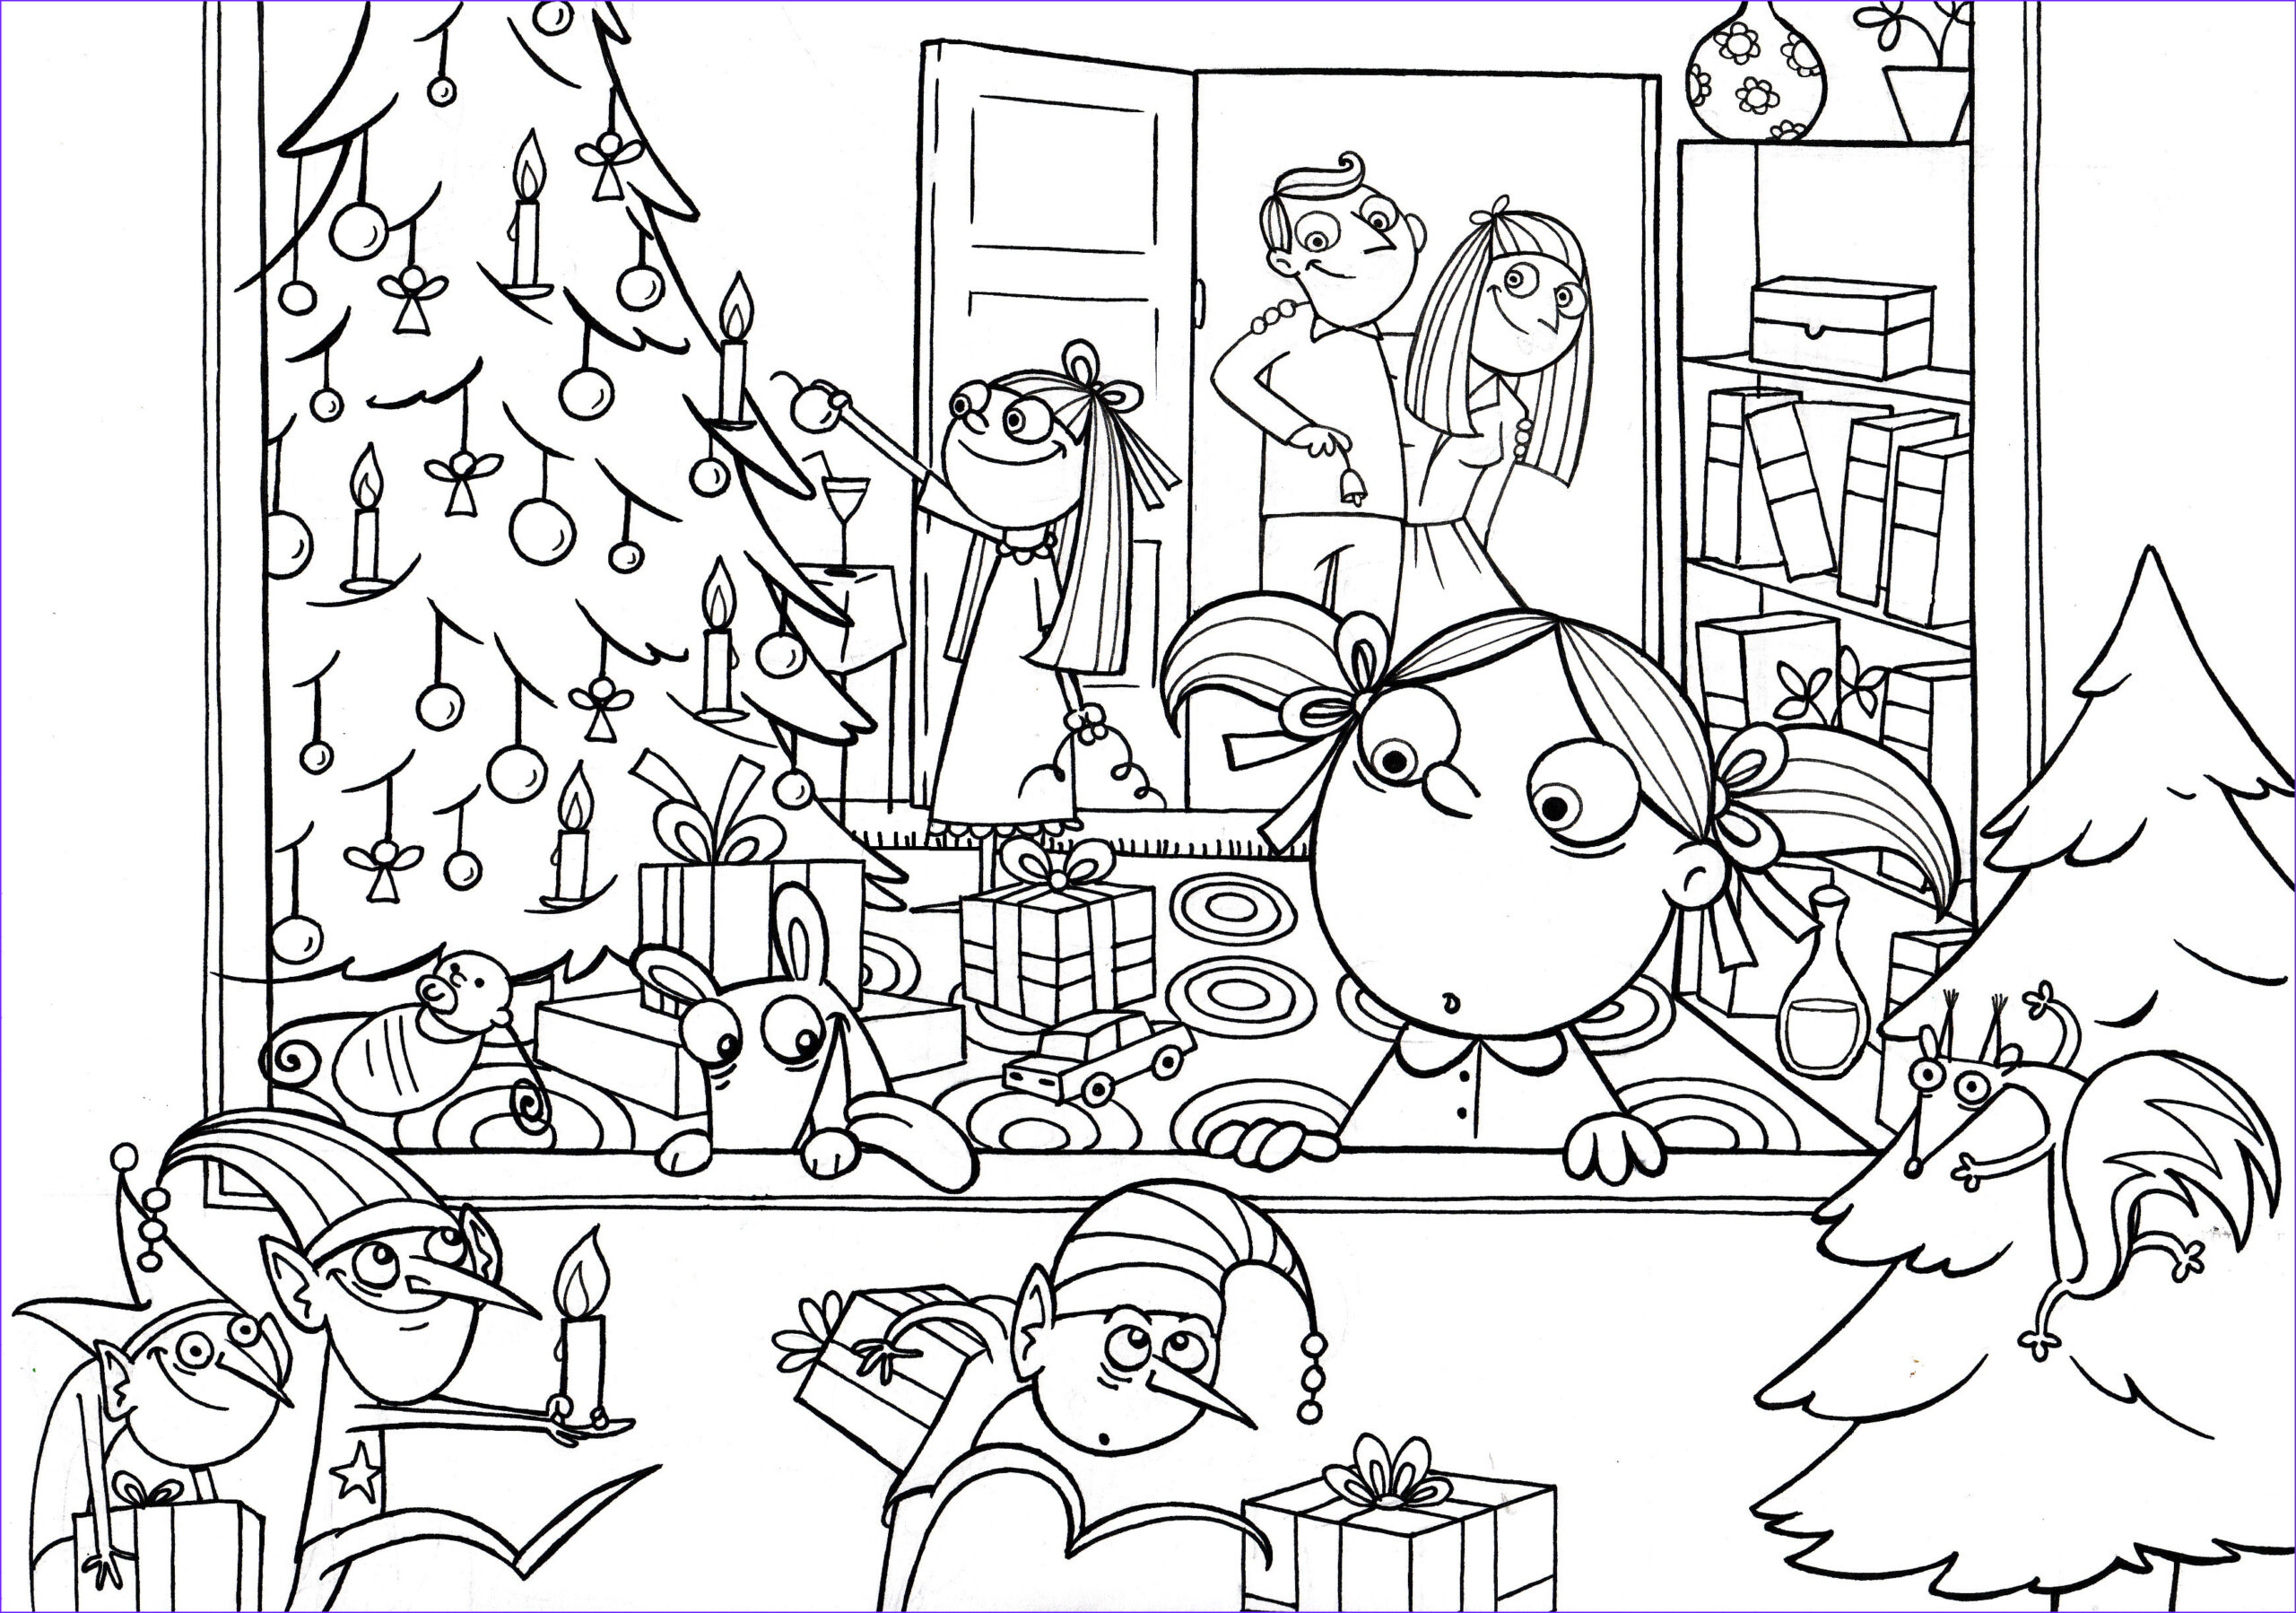 Free Adult Christmas Coloring Pages Luxury Photography Free Coloring Pages by Monika Vas